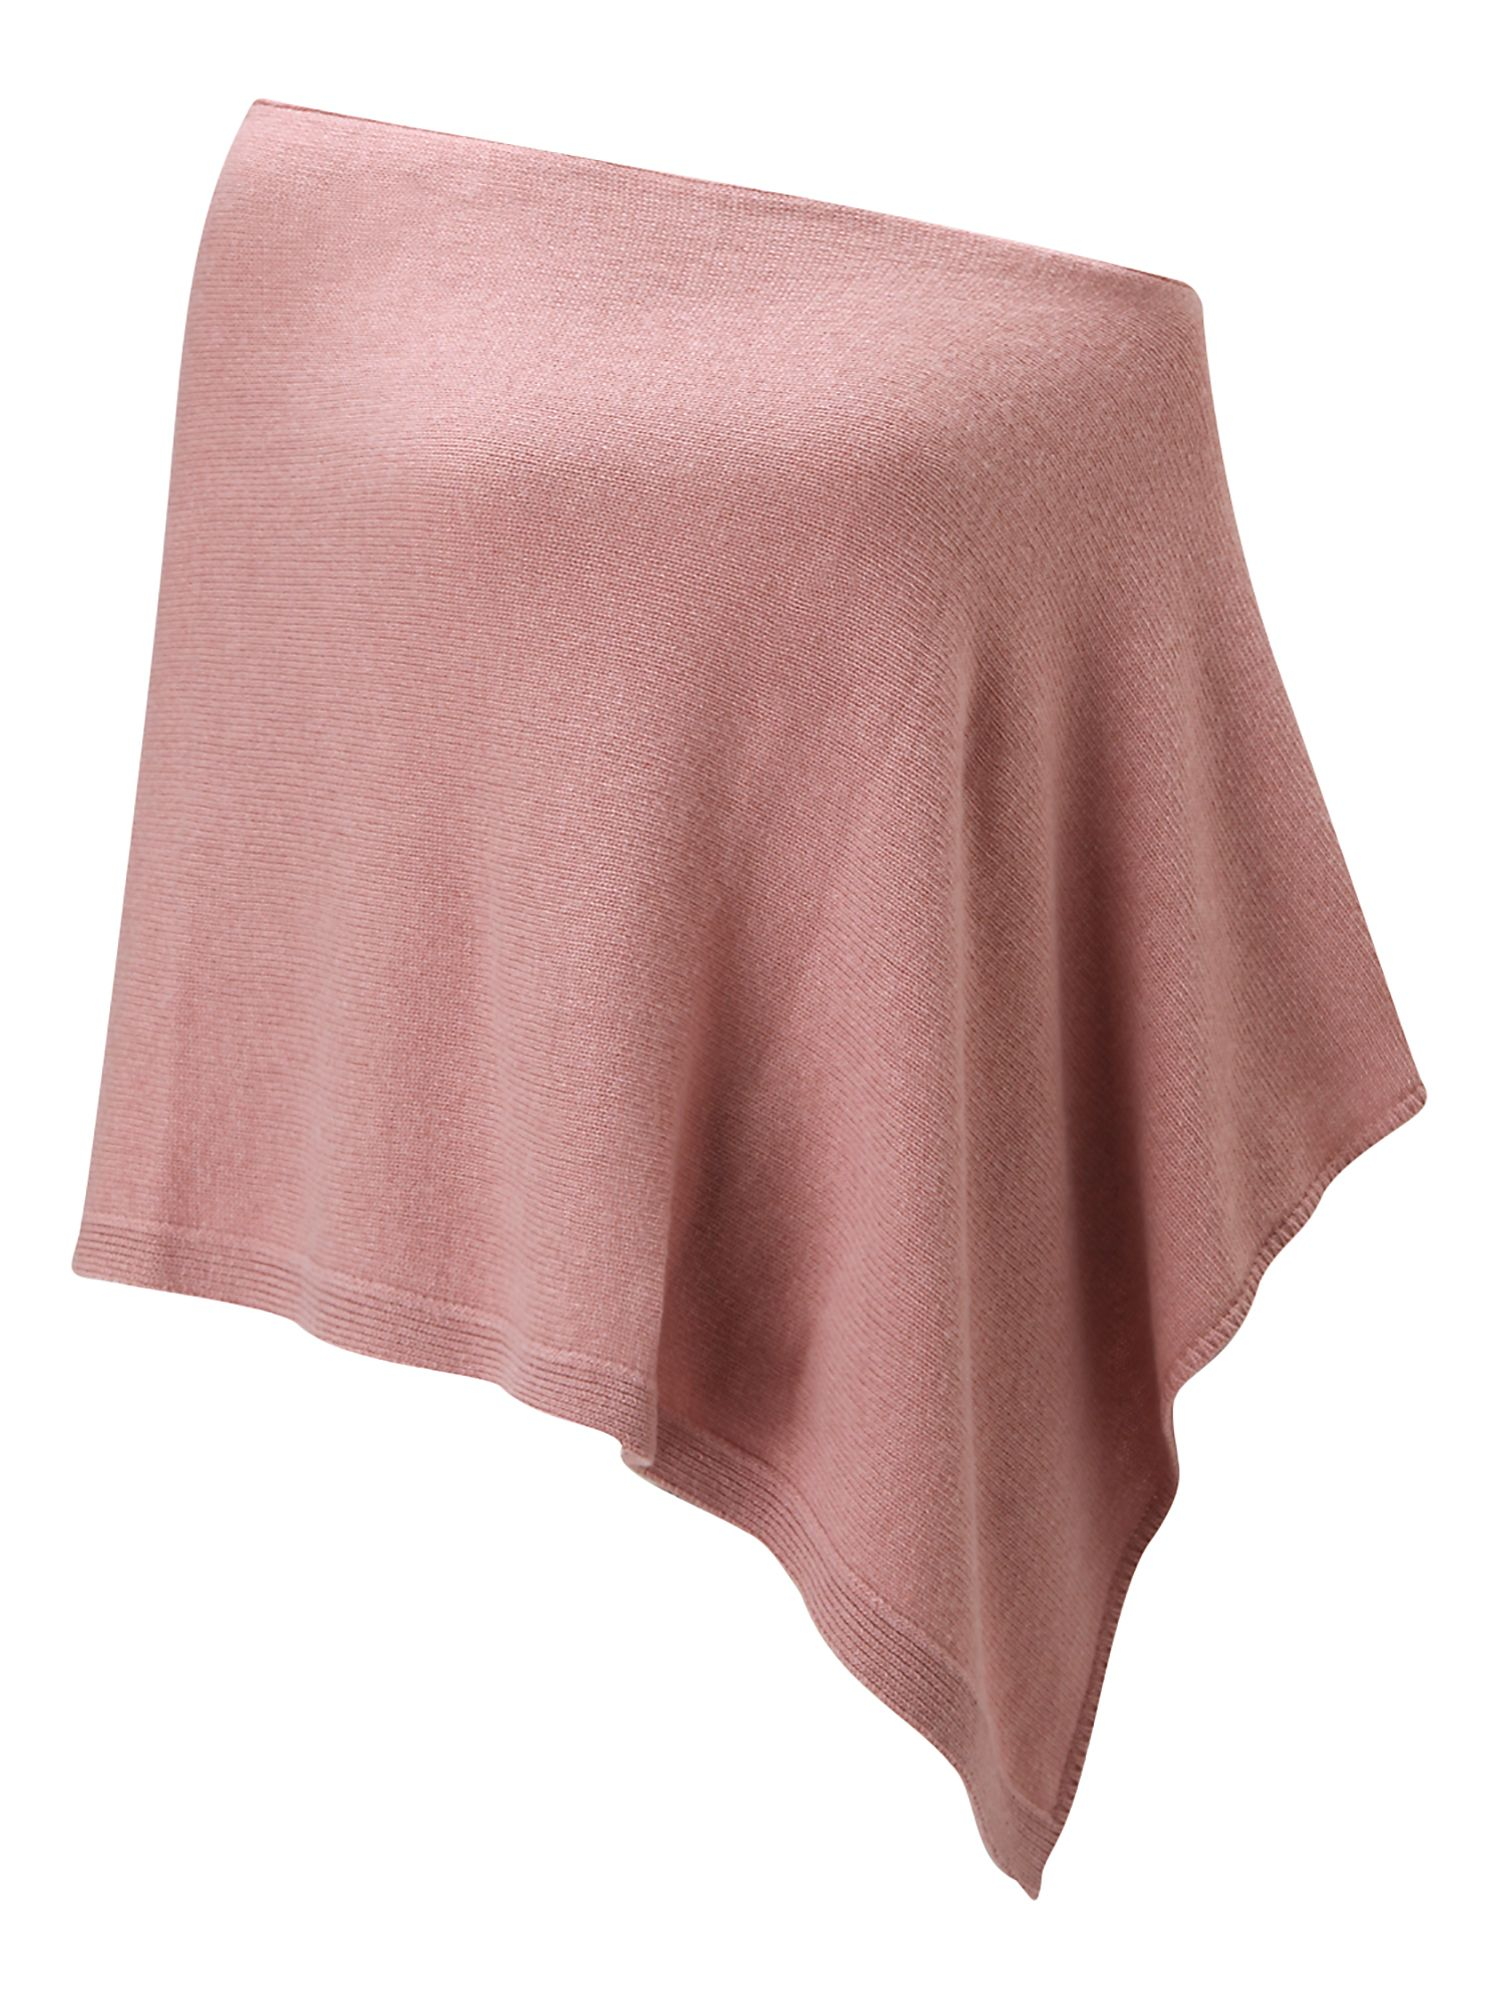 Jigsaw Jigsaw Knitted ribbed border poncho, Pale Pink